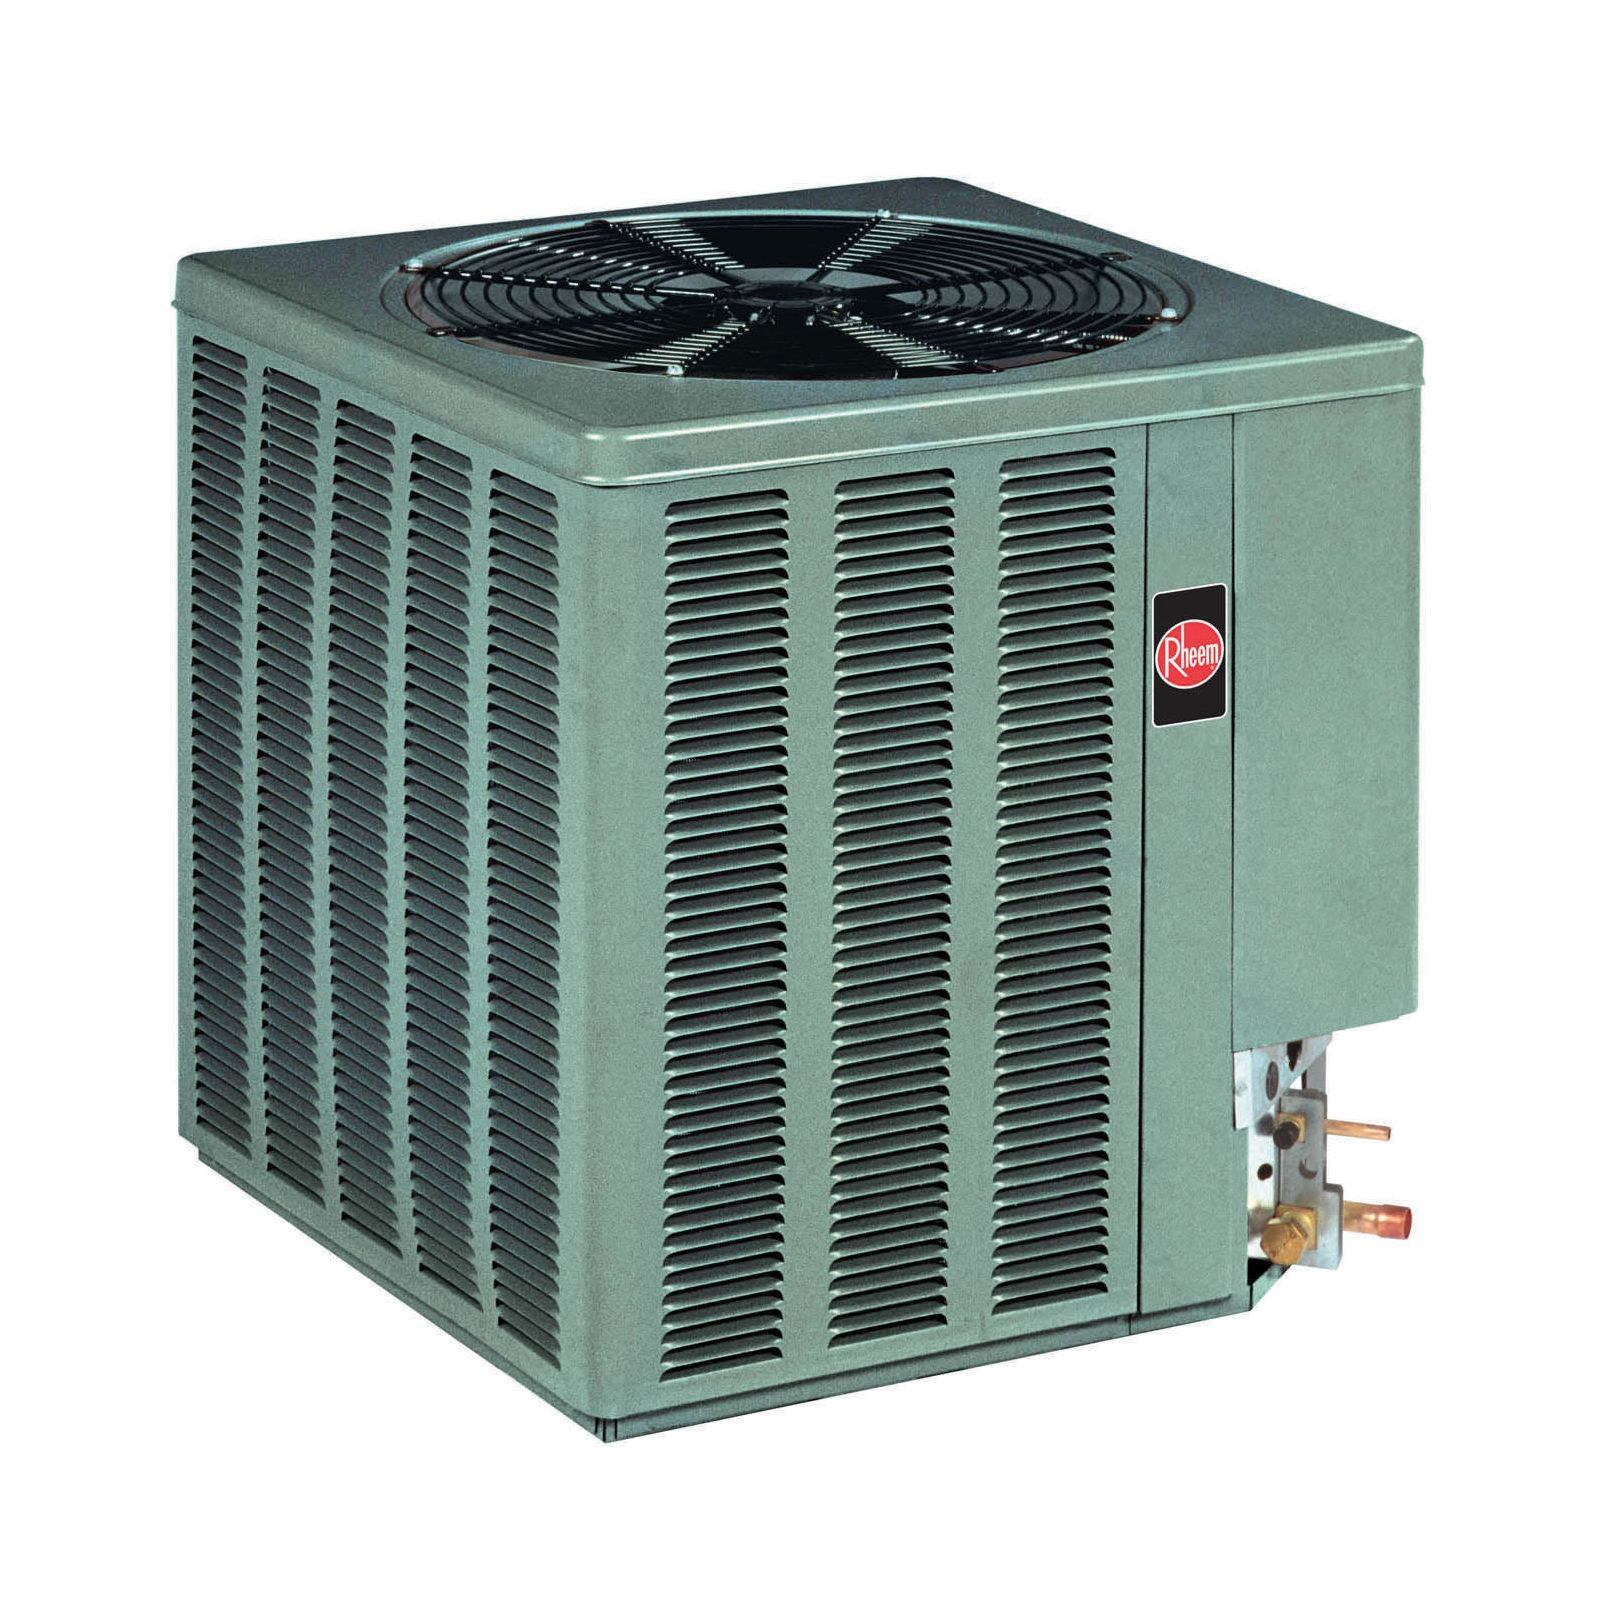 Rheem 15PJL18A01 - Value Series 1 1/2 Ton, 15 SEER, R410A Heat Pump